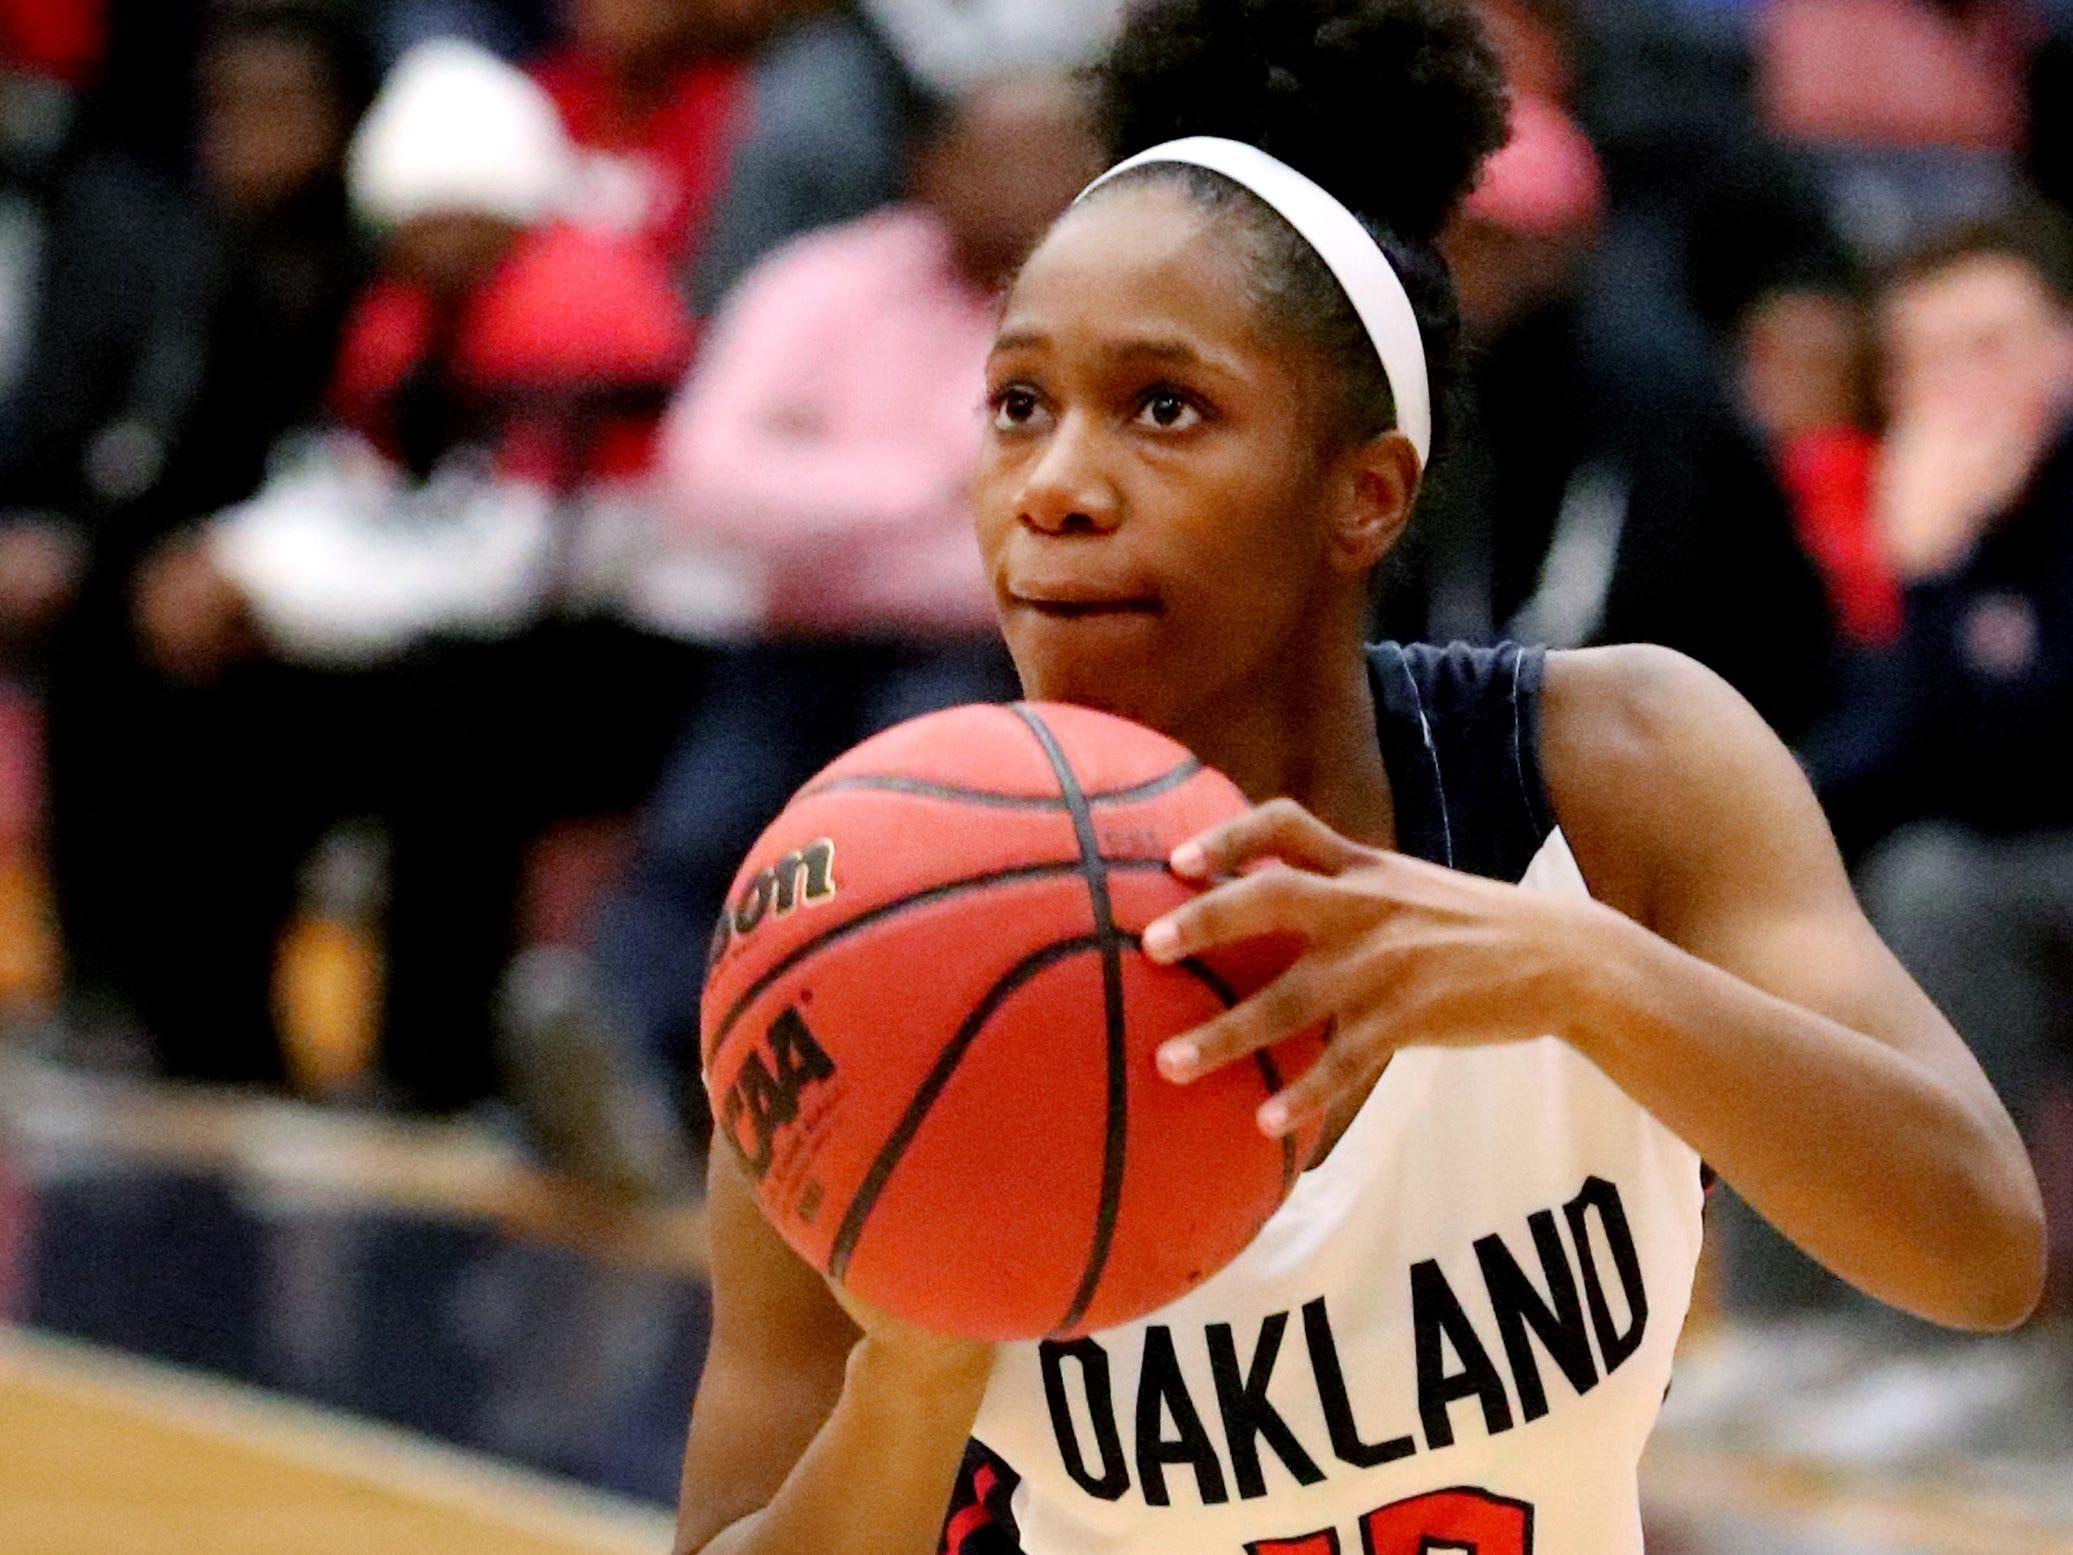 Oakland's Dakoria Puckett (10) shoots the ball during the game against Siegel at Oakland on Tuesday, Dec.. 4, 2018.